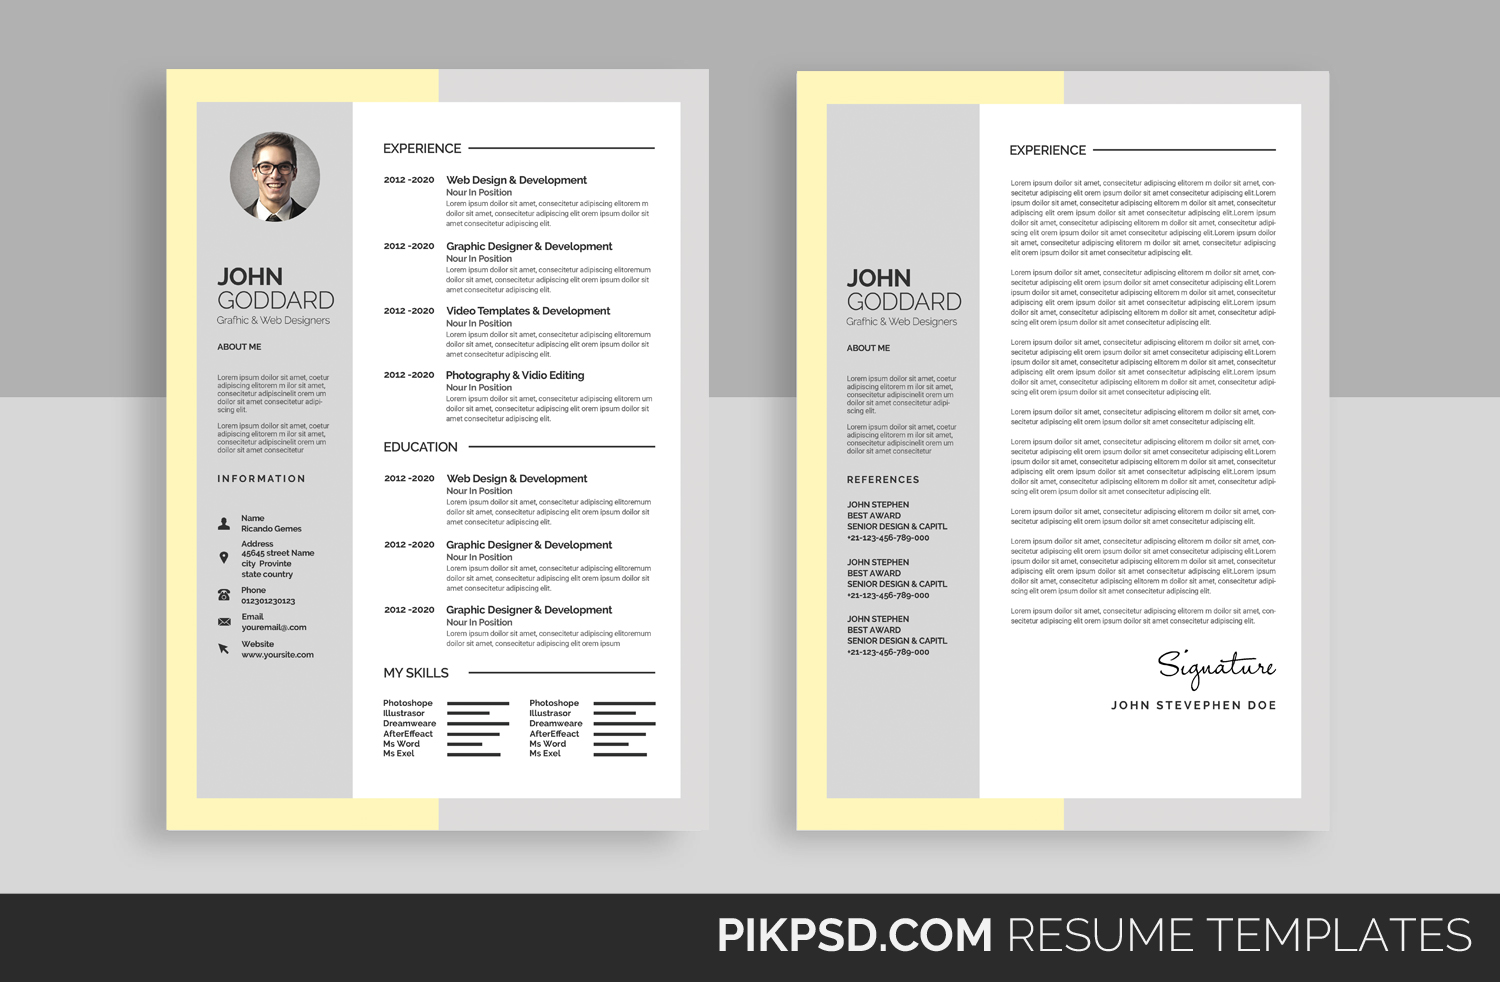 Material Design Resume/CV Set by Busin | Design Bundles